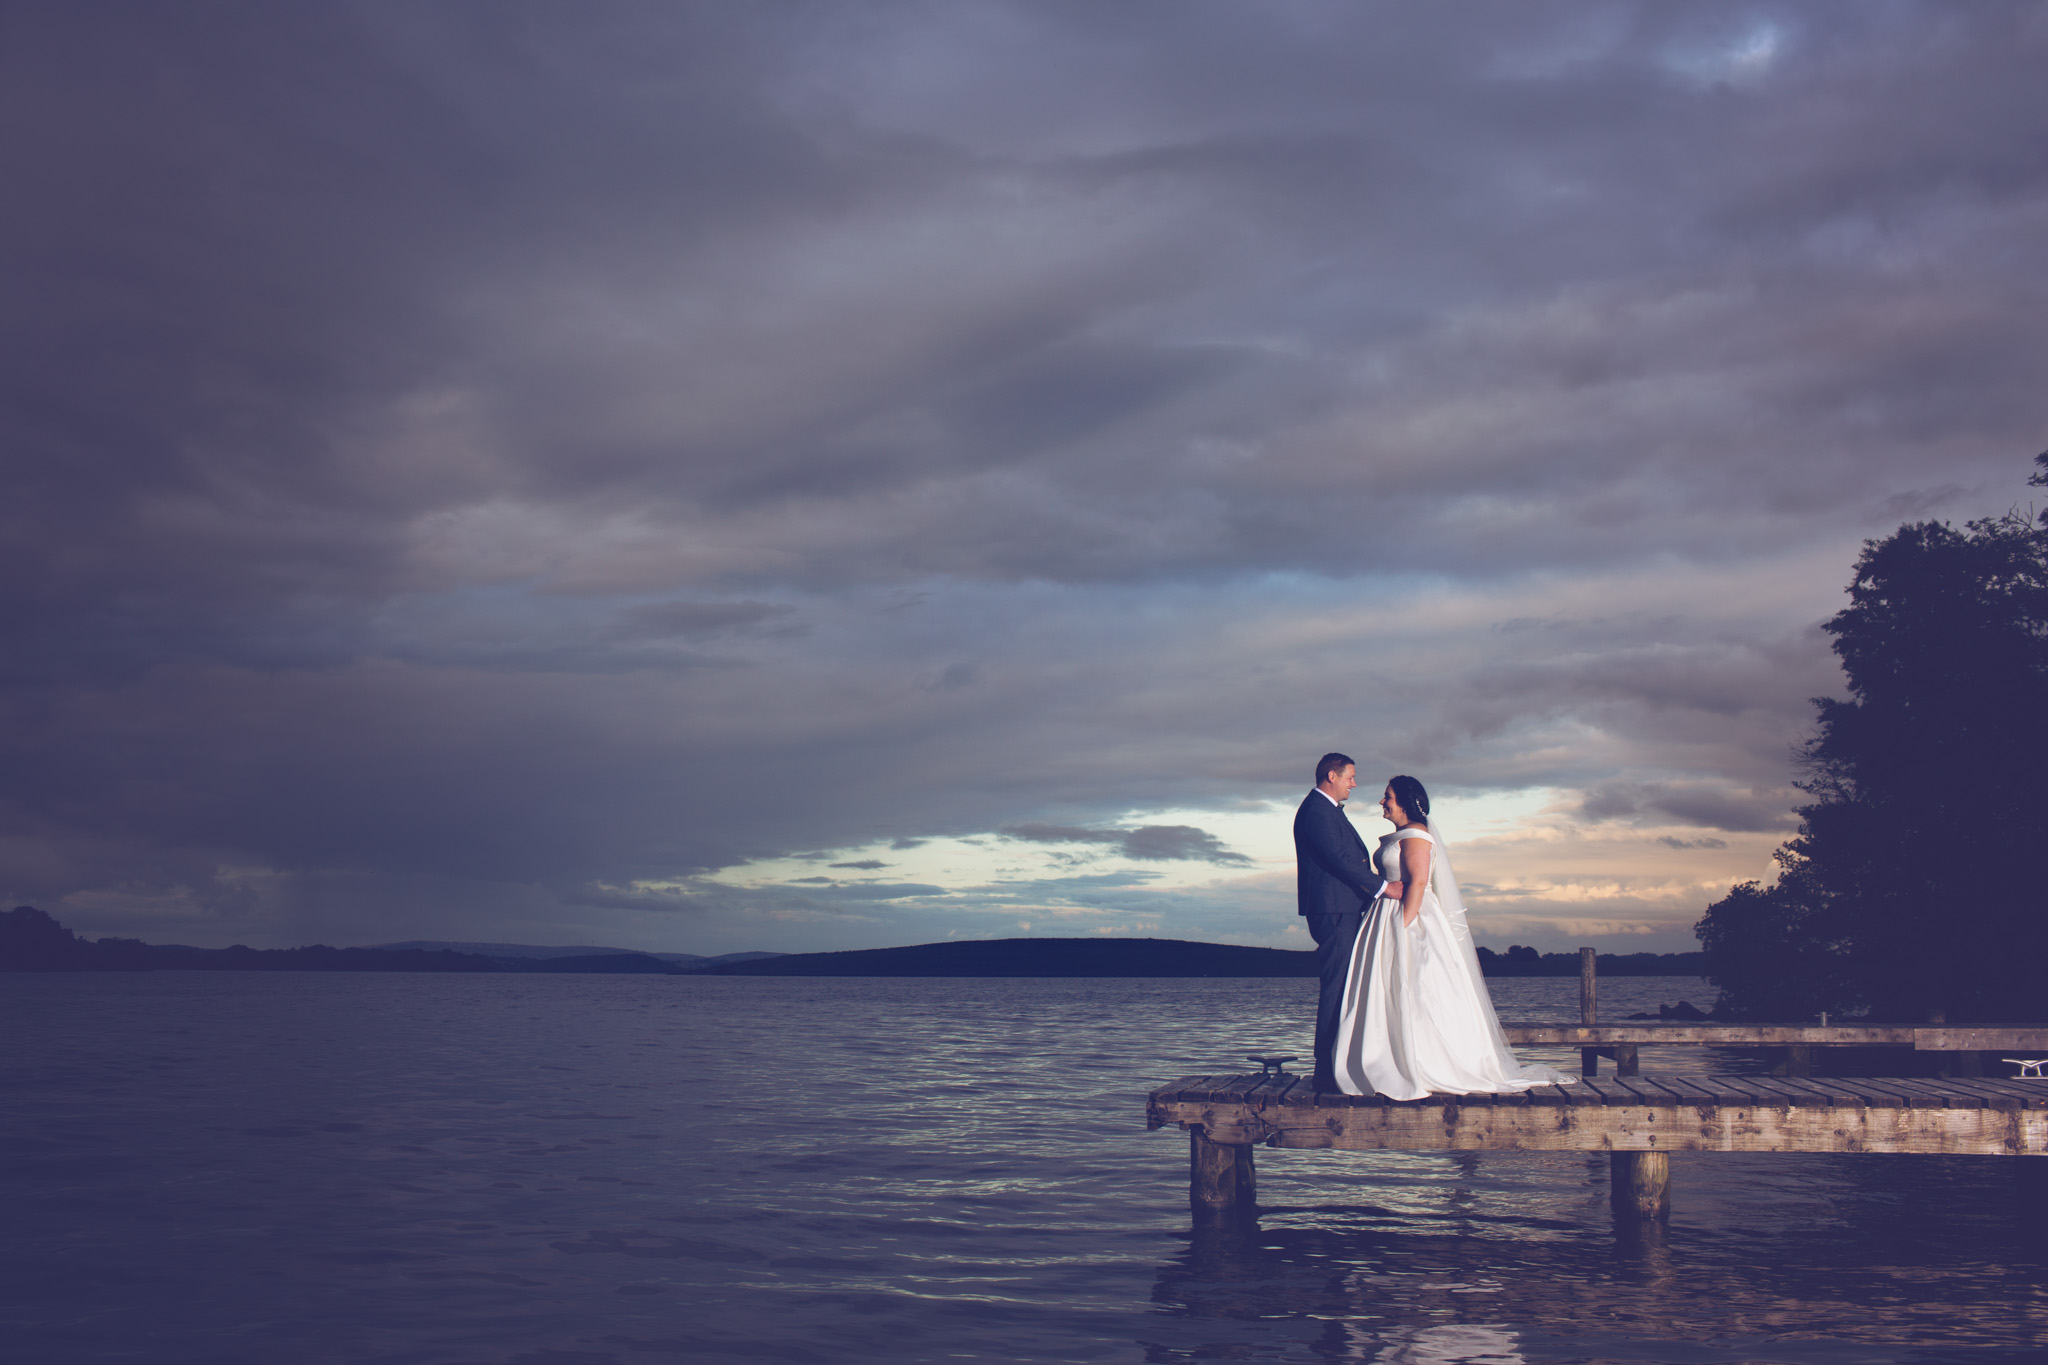 Mark_Barnes_Northern_Ireland_Wedding_Photography_Lusty_Beg_Wedding_Photography_Hayley&Brian-39.jpg